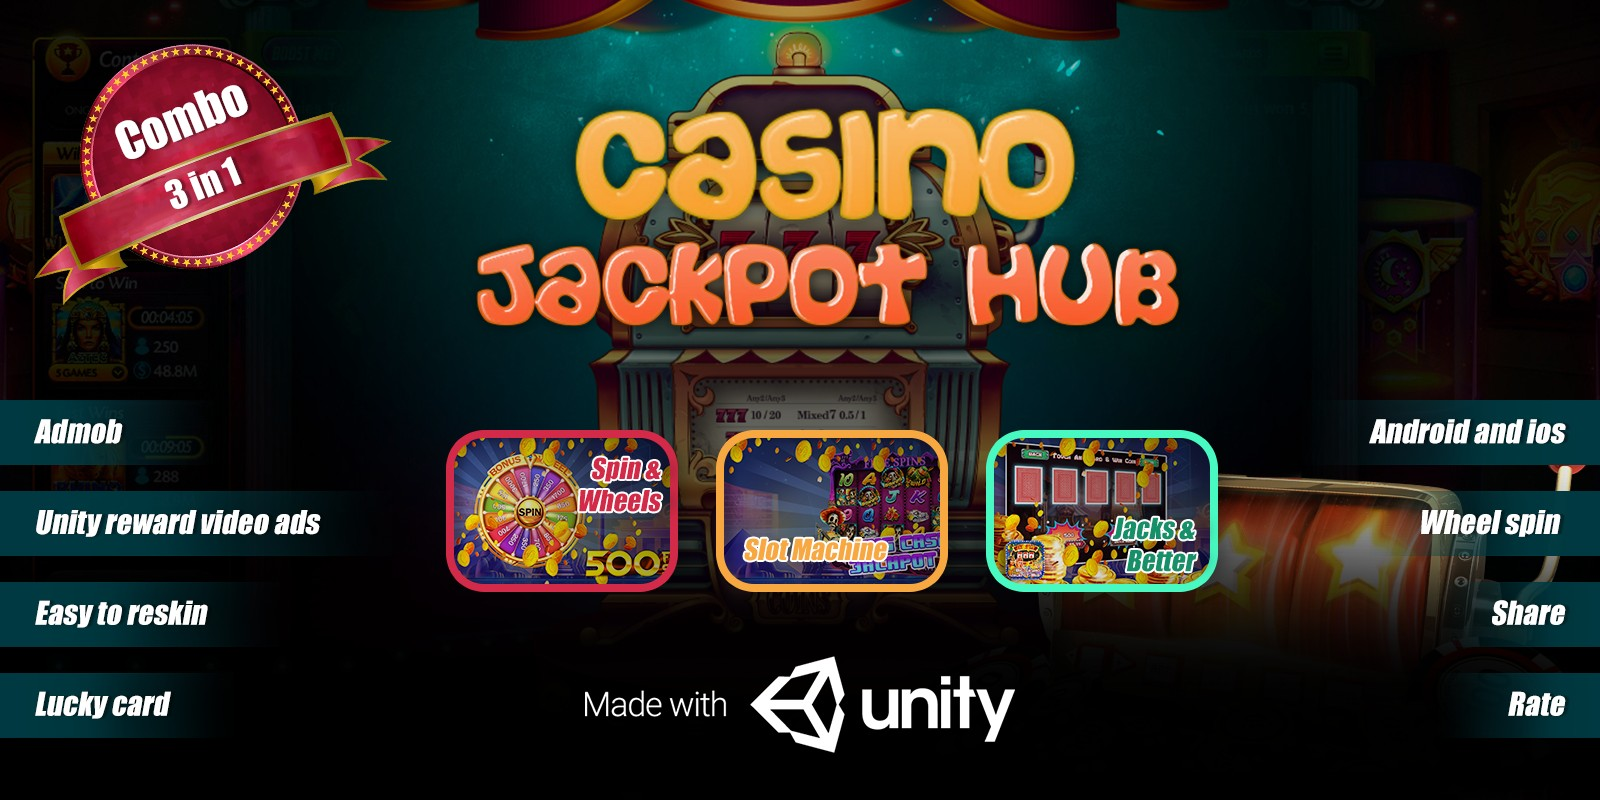 Casino Jackpot Hub - Complete Unity Project